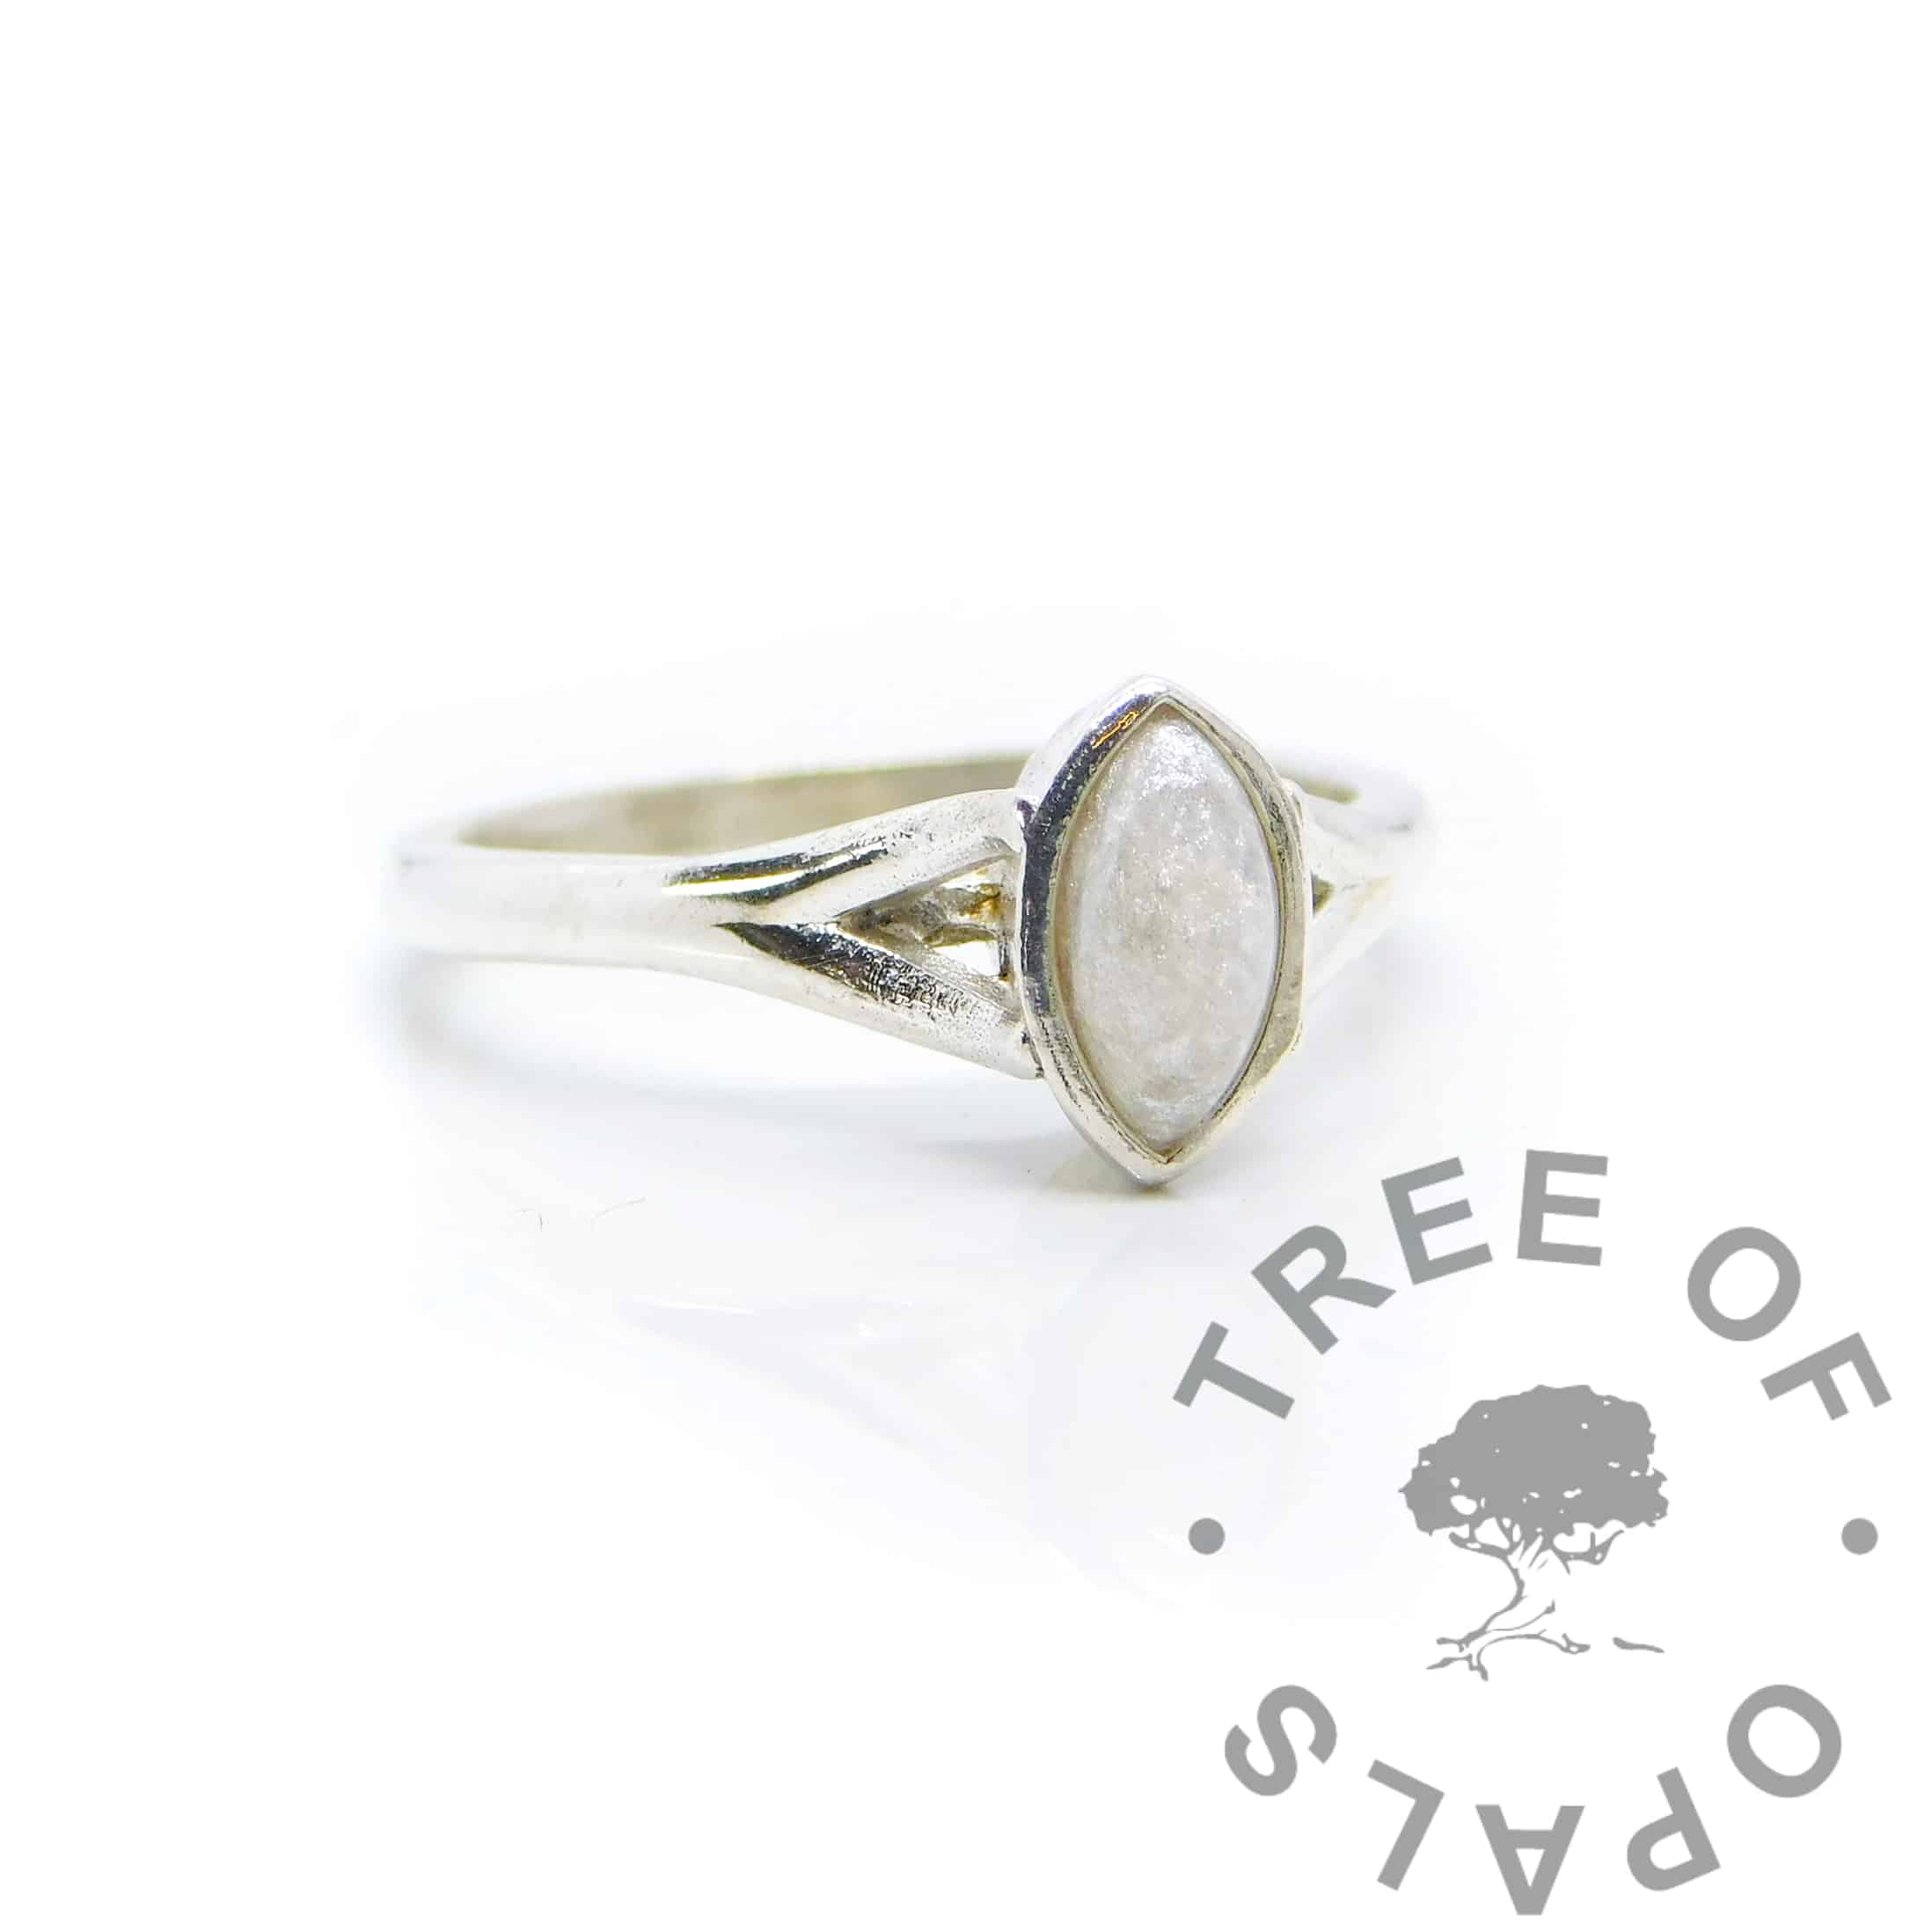 Breastmilk Hannah ring with unicorn white resin sparkle mix, solid 935 purity Argentium silver, cast by hand in Scotland. Split shank band, engravable on the inside. 8x4mm marquise setting for filling or fitting a cabochon